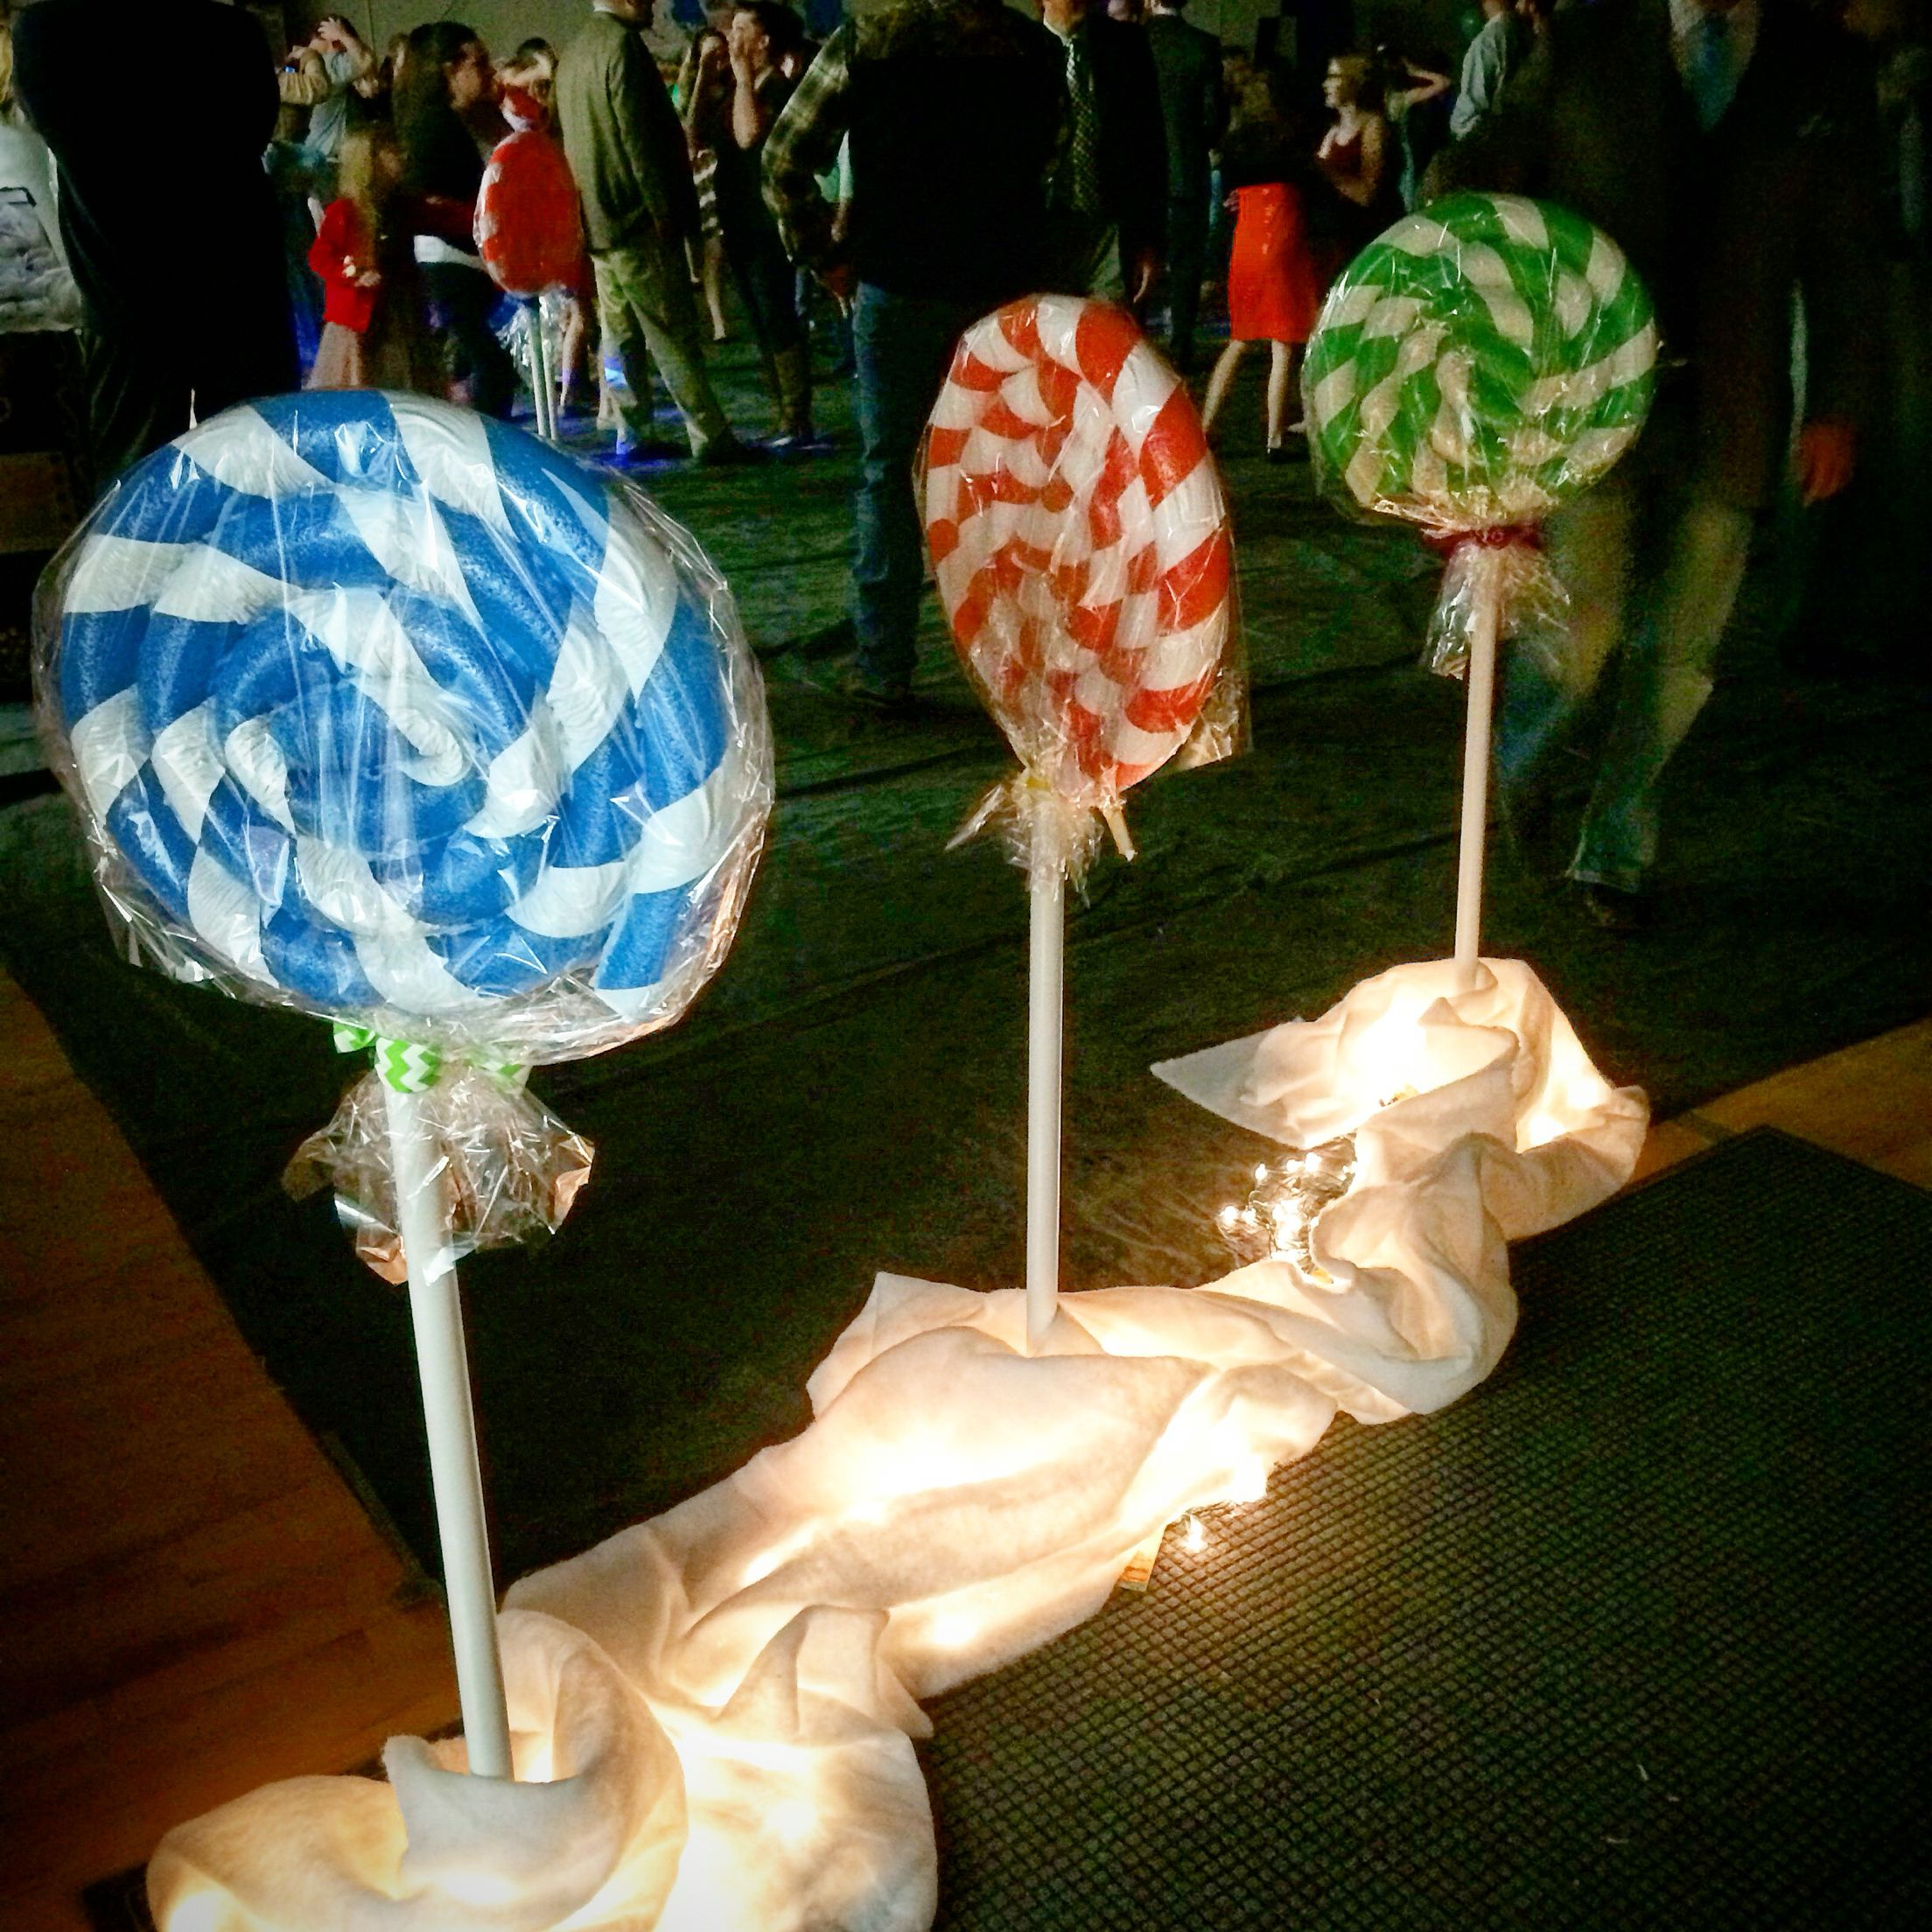 Pool noodle lollipops (With images) | Candy christmas ...